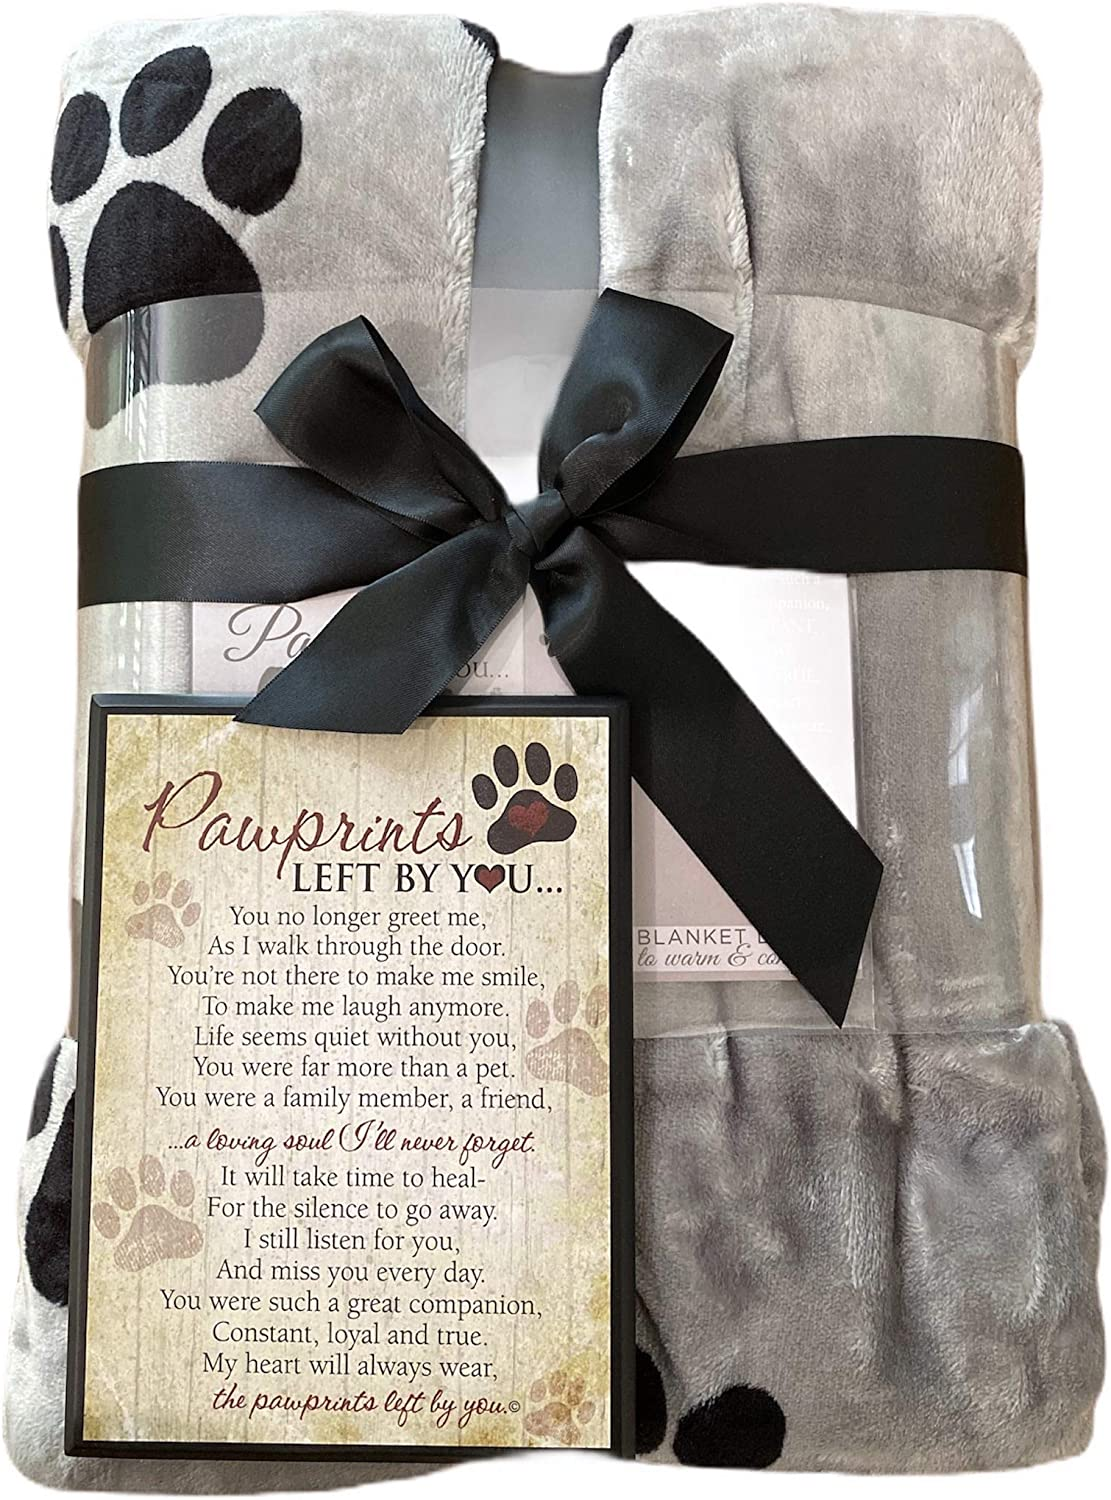 Comforting Pet Loss//Pet Bereavement Gift Pawprints Left by You Personalized Pet Memorial Blanket with Heartfelt Sentiment Personalized